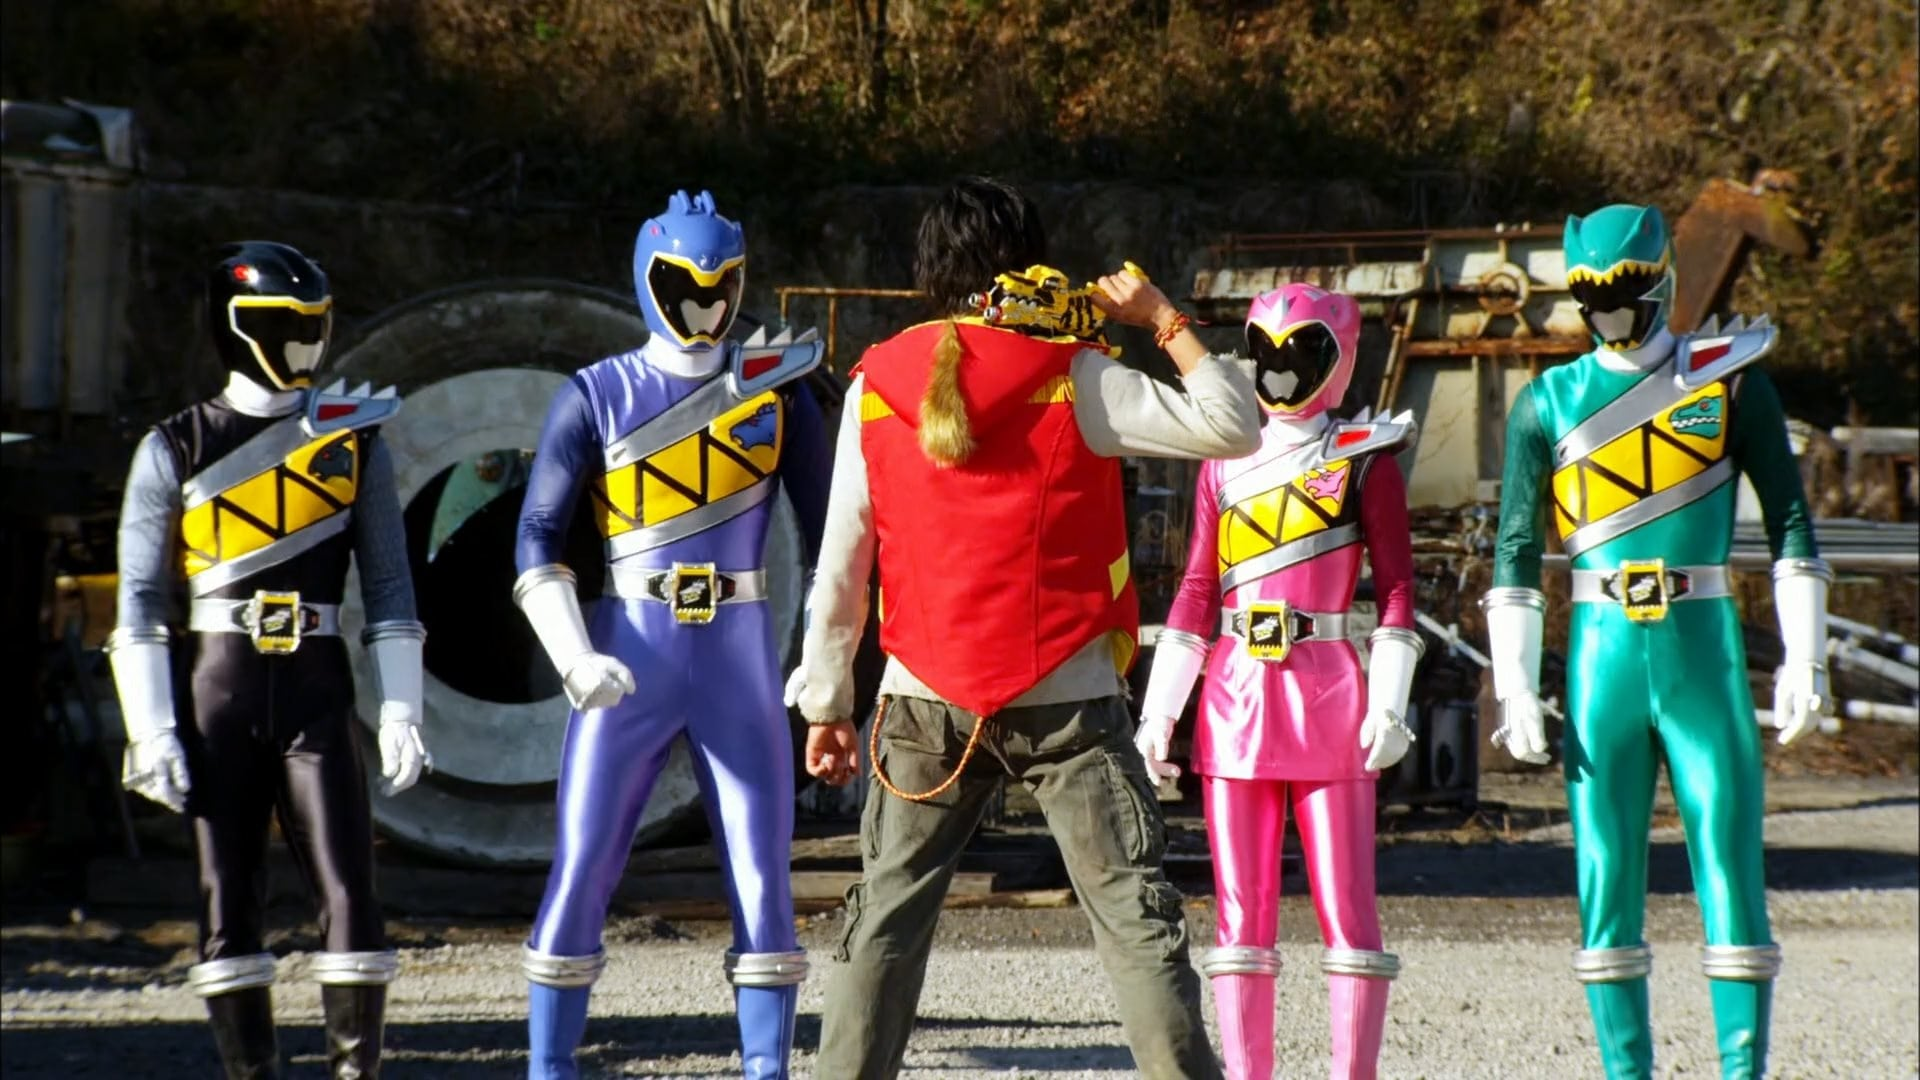 Super Sentai - Season 37 Episode 1 : Brave 1: He's Here! The Red King